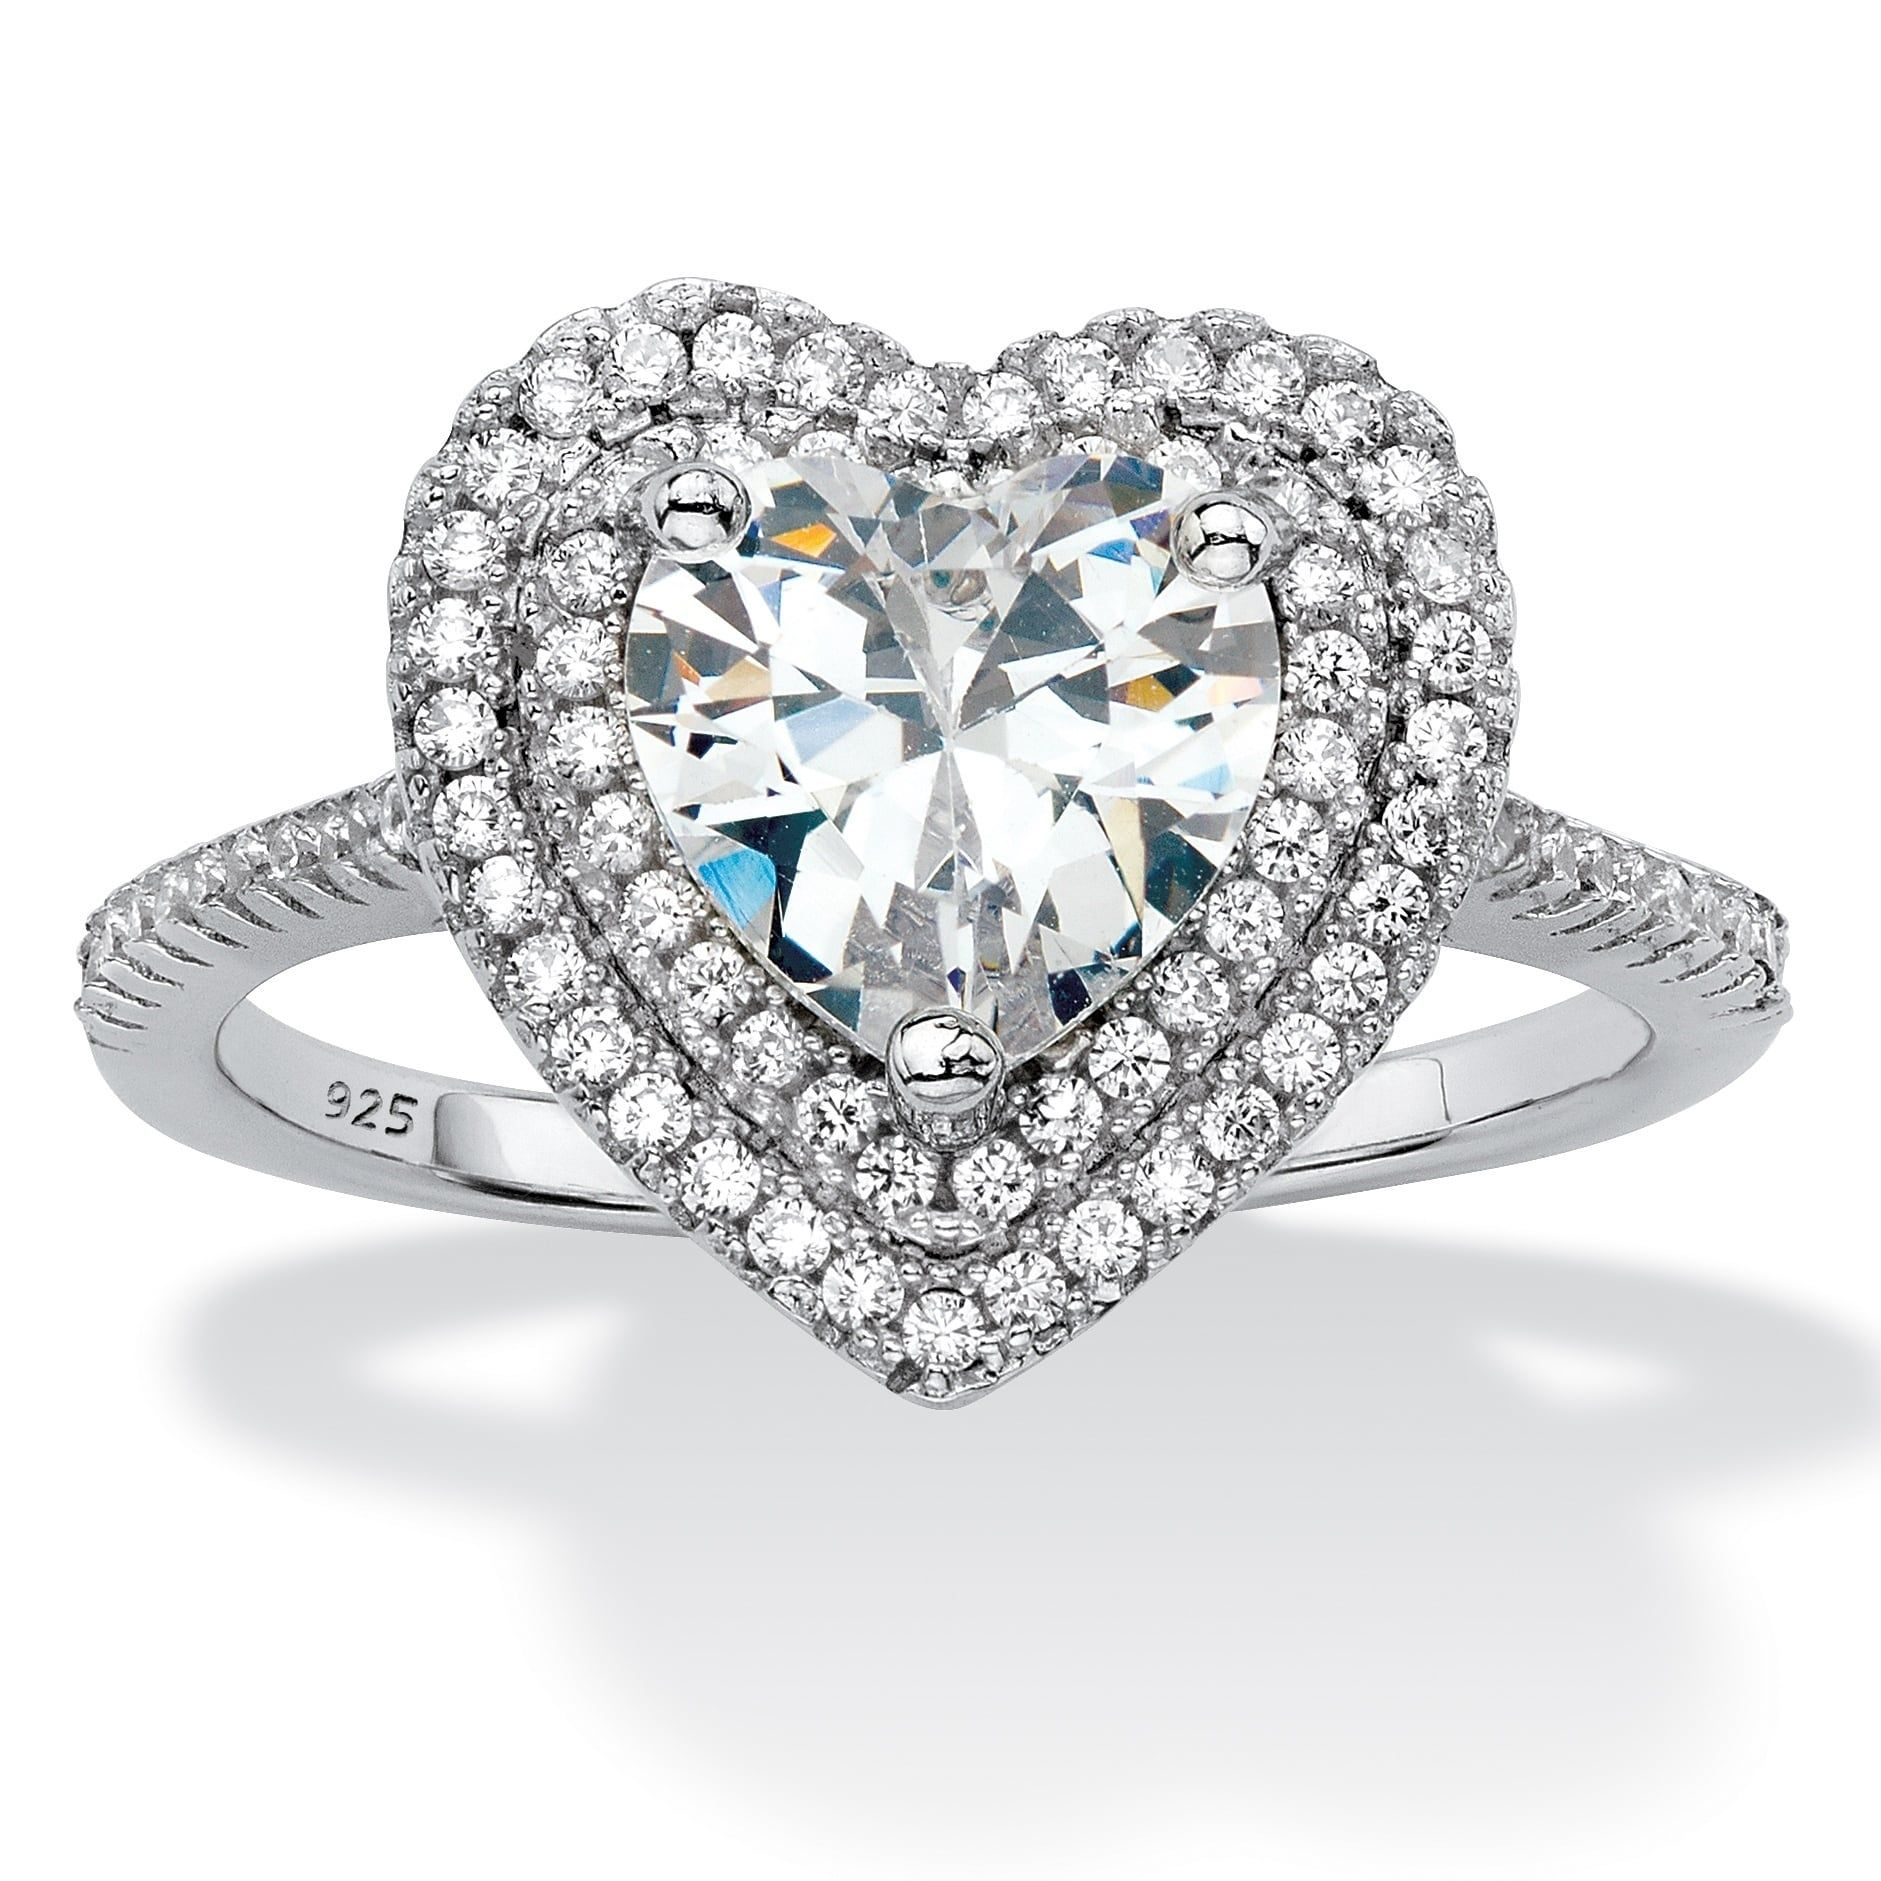 Platinum over Sterling Silver Cubic Zirconia Halo